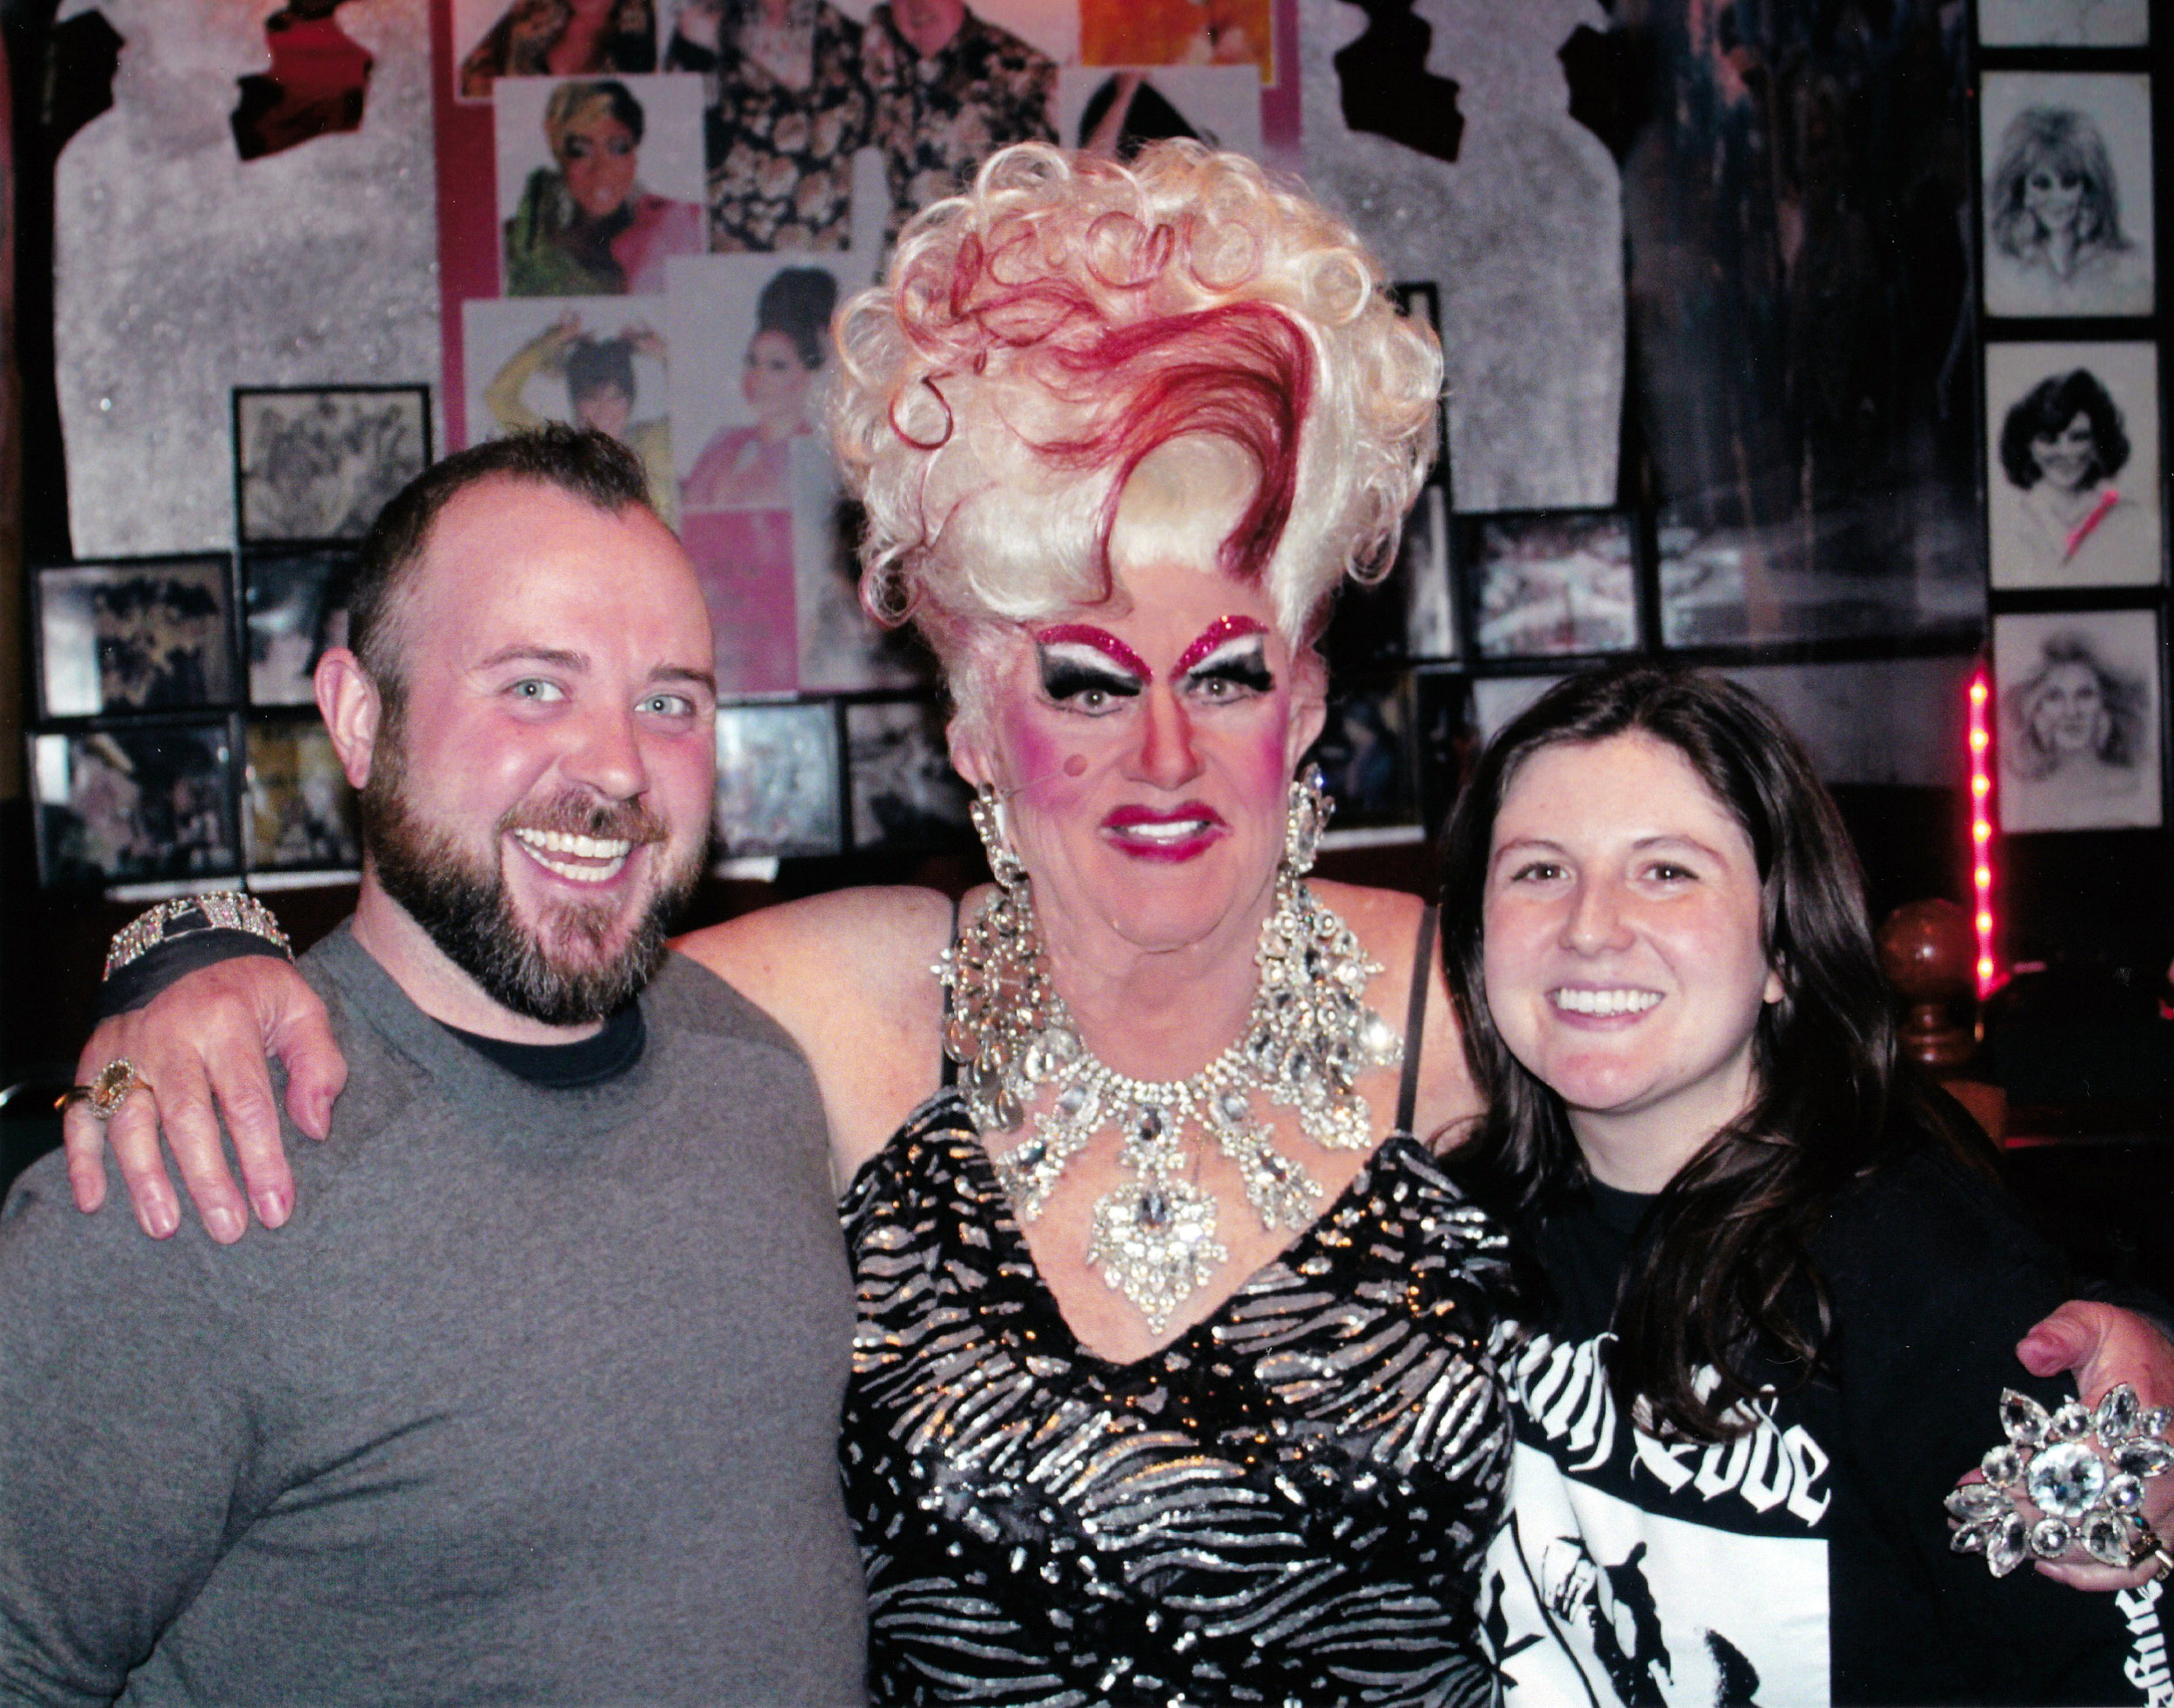 """Too much makeup. Too much jewelry. Never too old! - Walter Cole, aka Darcelle XV, is the oldest living performing drag queen in the West Coast's longest running drag show. """"Through Darcelle's Eyes"""" will introduce audiences to the life and journey of a legendary performer who braved discrimination and never backed down. Our hope for this film is simple: preserve and honor the history of one of America's most cherished performers, the one and only Darcelle XV."""